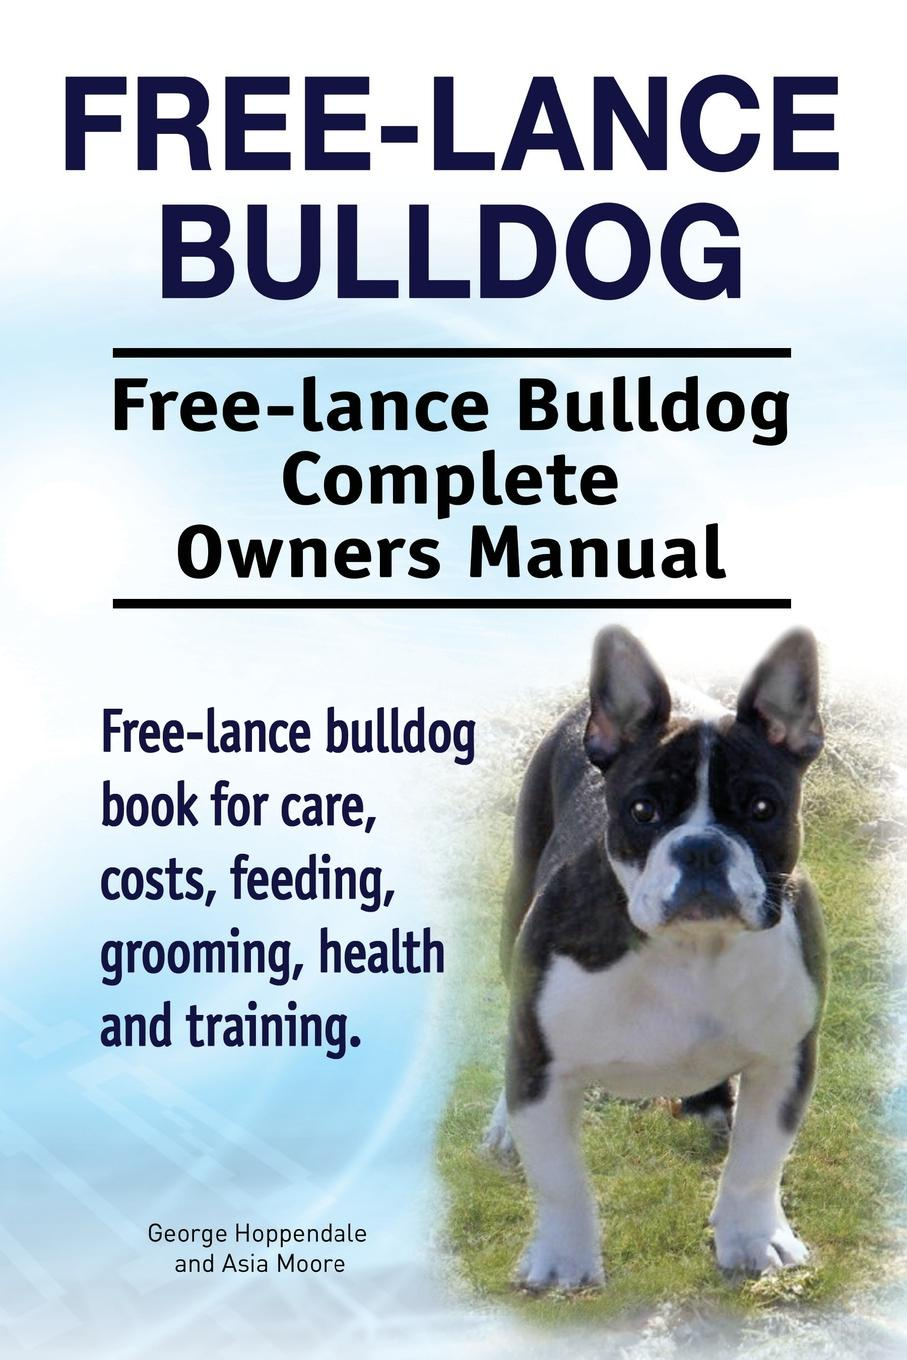 George Hoppendale, Asia Moore Free lance bulldog. Free lance bulldog Complete Owners Manual. Free lance bulldog book for care, costs, feeding, grooming, health and training. 2017 spring fashion dresses women sexy dress v neck 3 4 sleeve solid split skirt casual long dress plus size s xxl